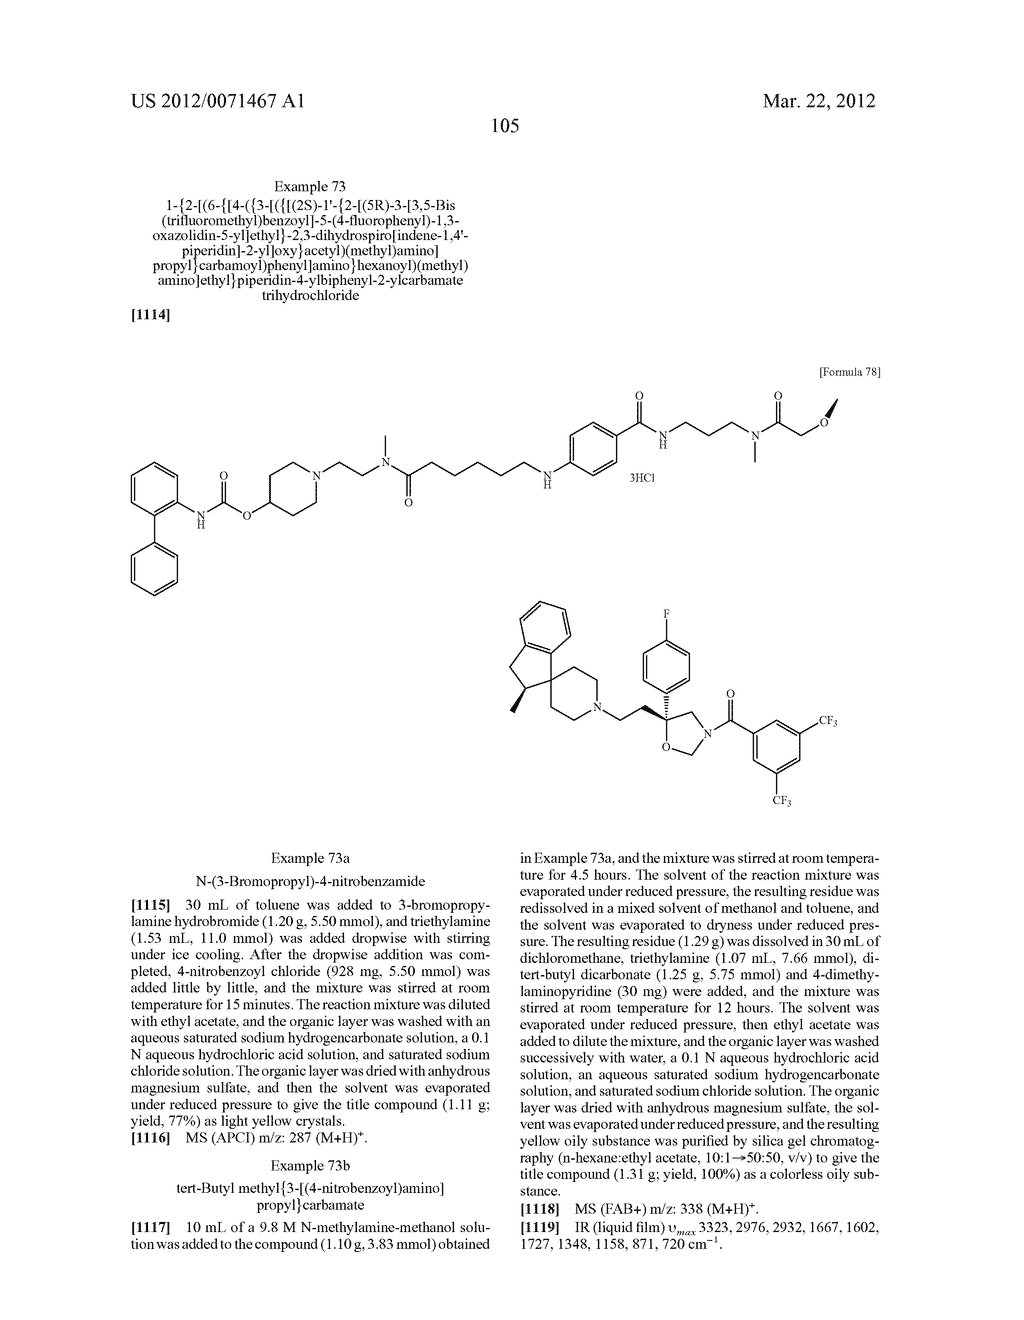 AMIDE DERIVATIVE - diagram, schematic, and image 106